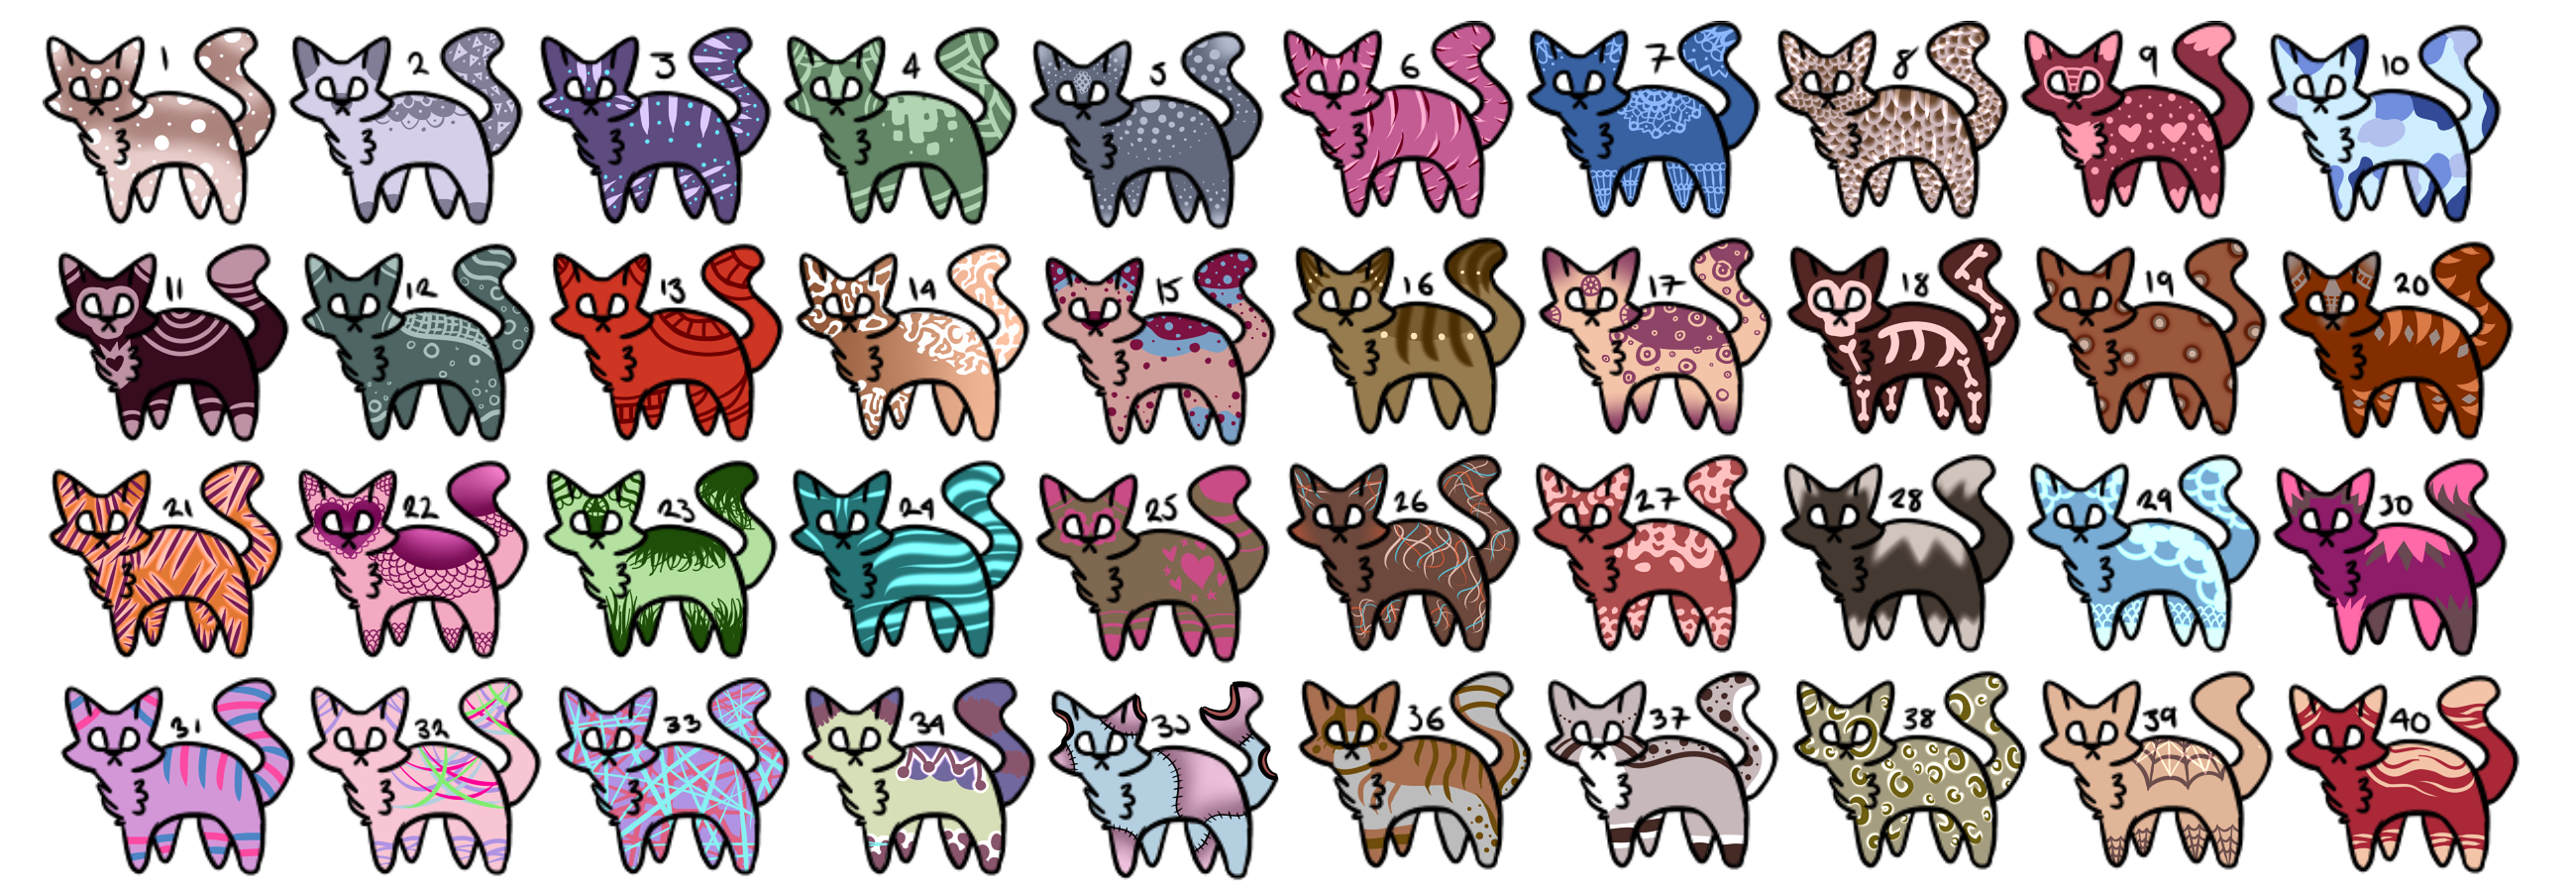 100 Feline Adoptables - OPEN by Blithe-Adopts